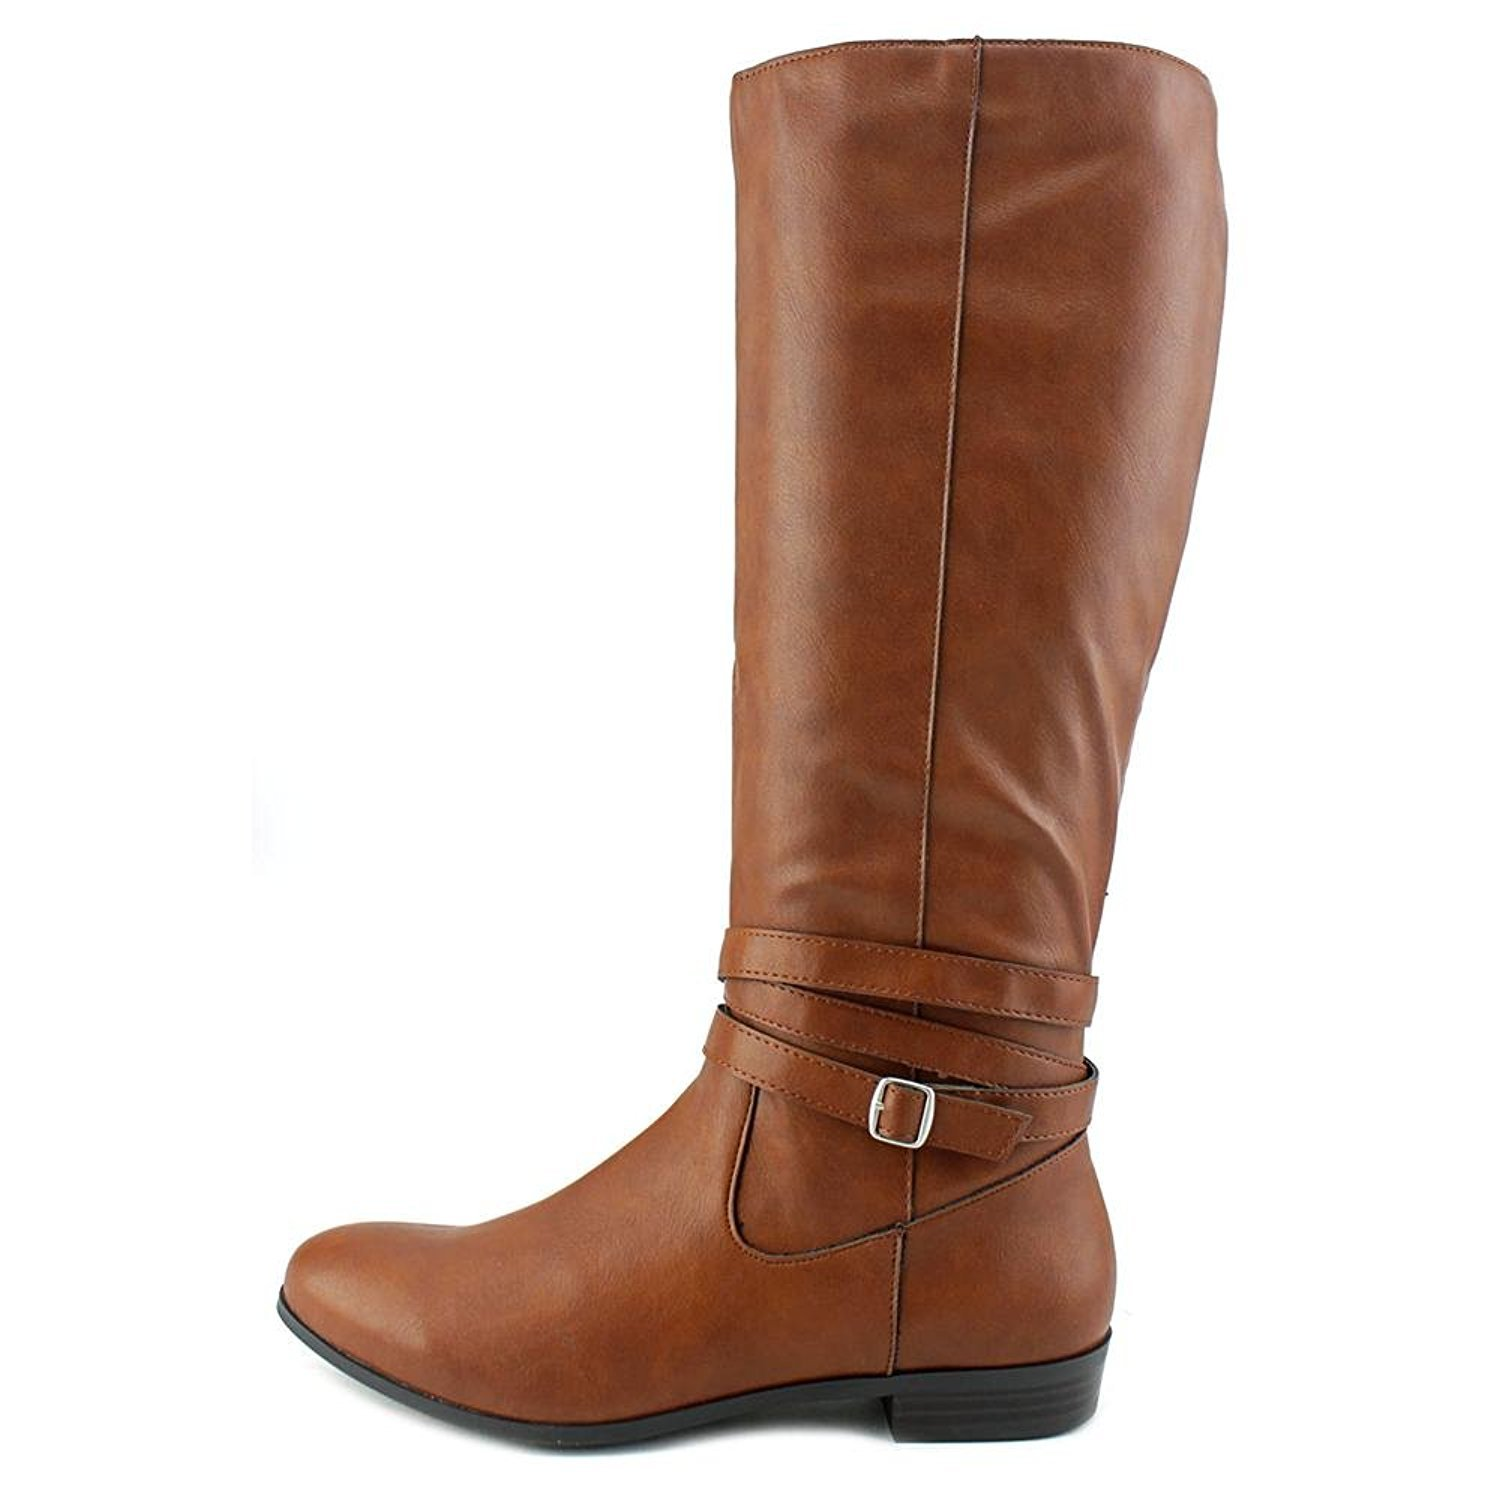 Style & Co.. Womens Fridaa Round Toe Mid-Calf Riding Boots, Brown, Size 9.5